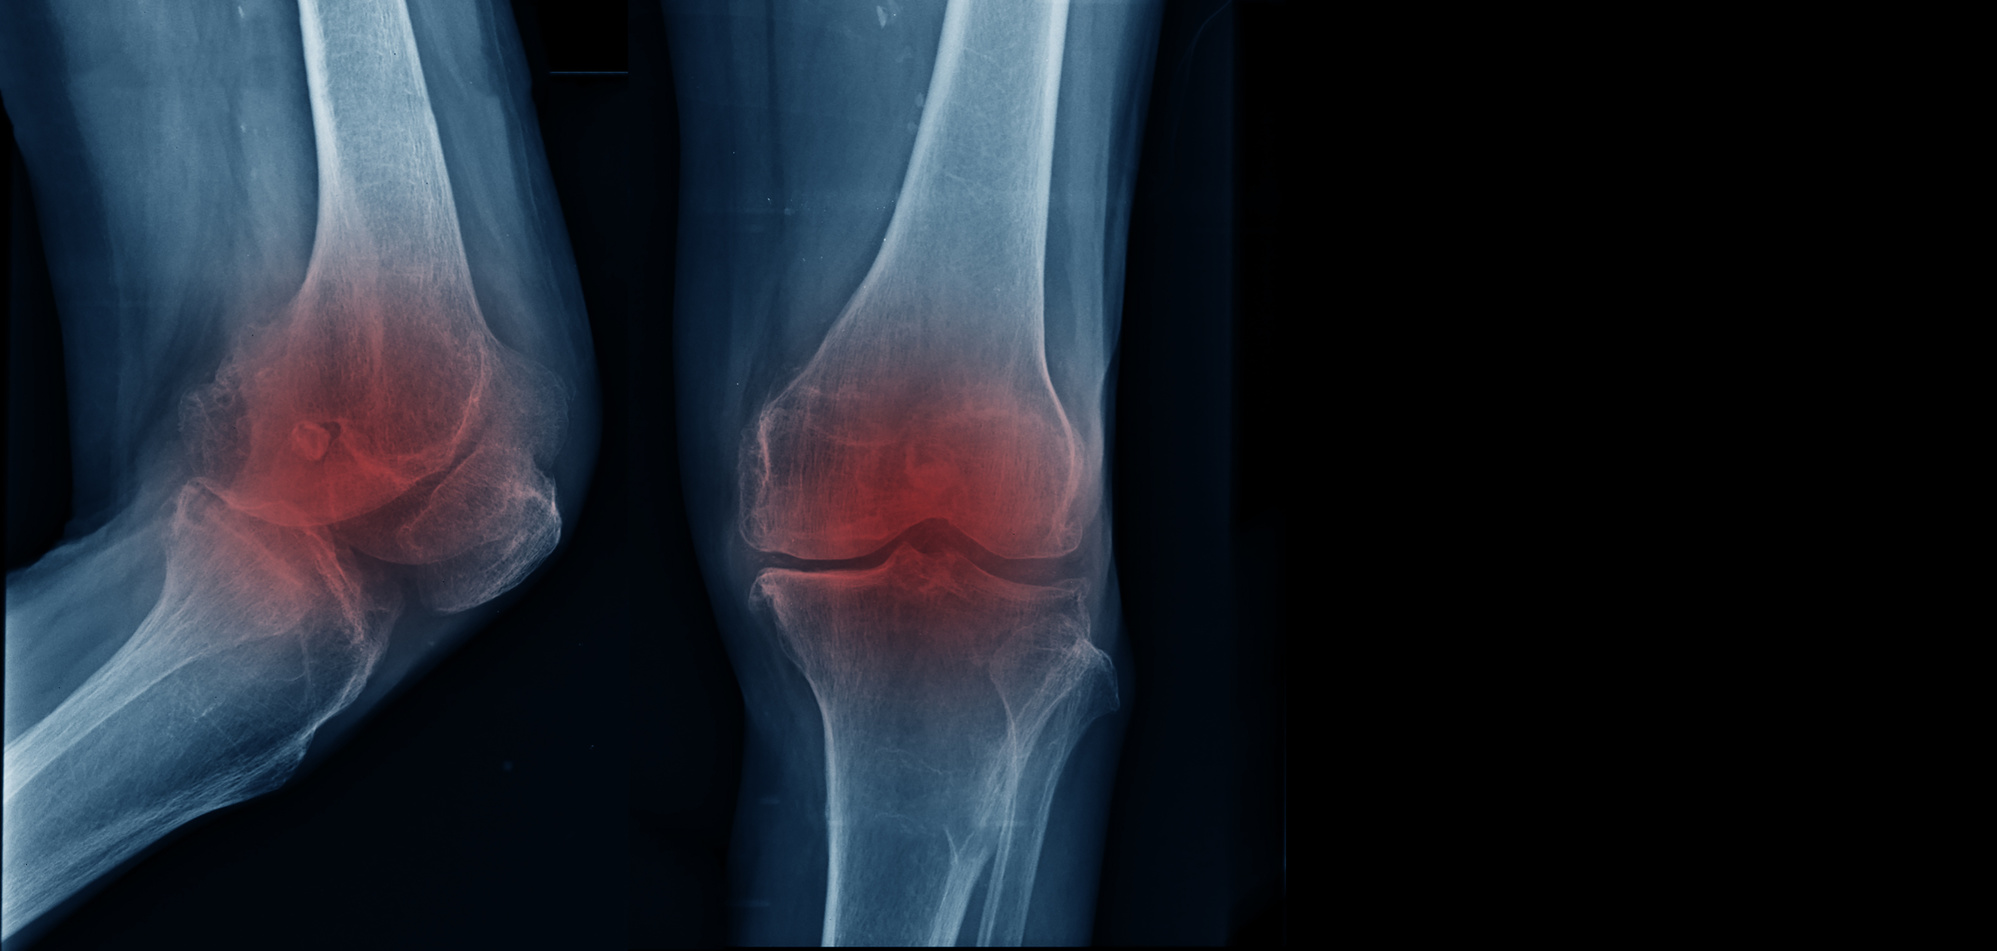 Weighing the Costs of Stem Cell Therapy for Osteoarthritis